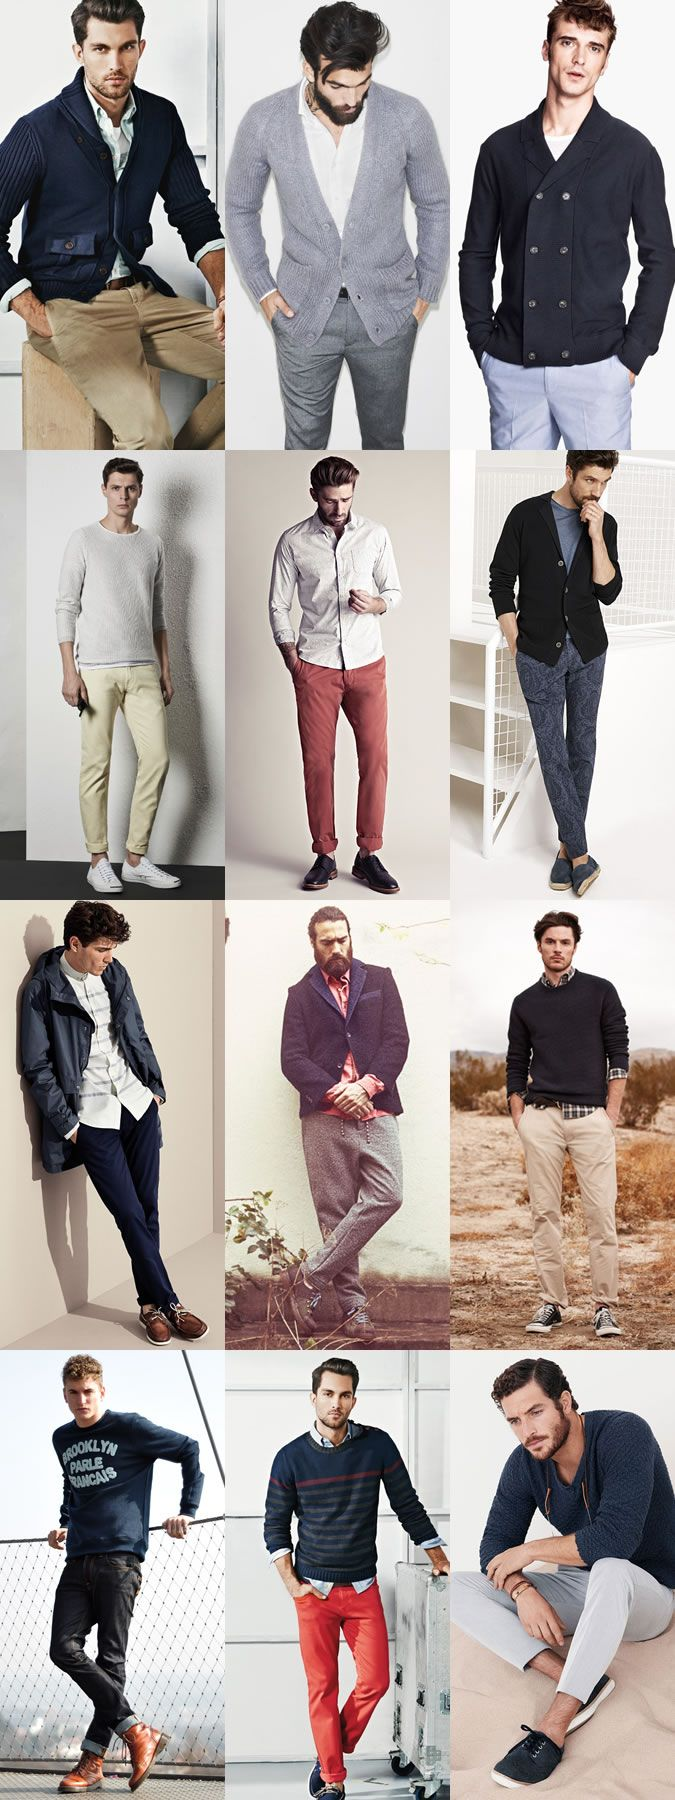 193 best lb inspirations images on pinterest | menswear